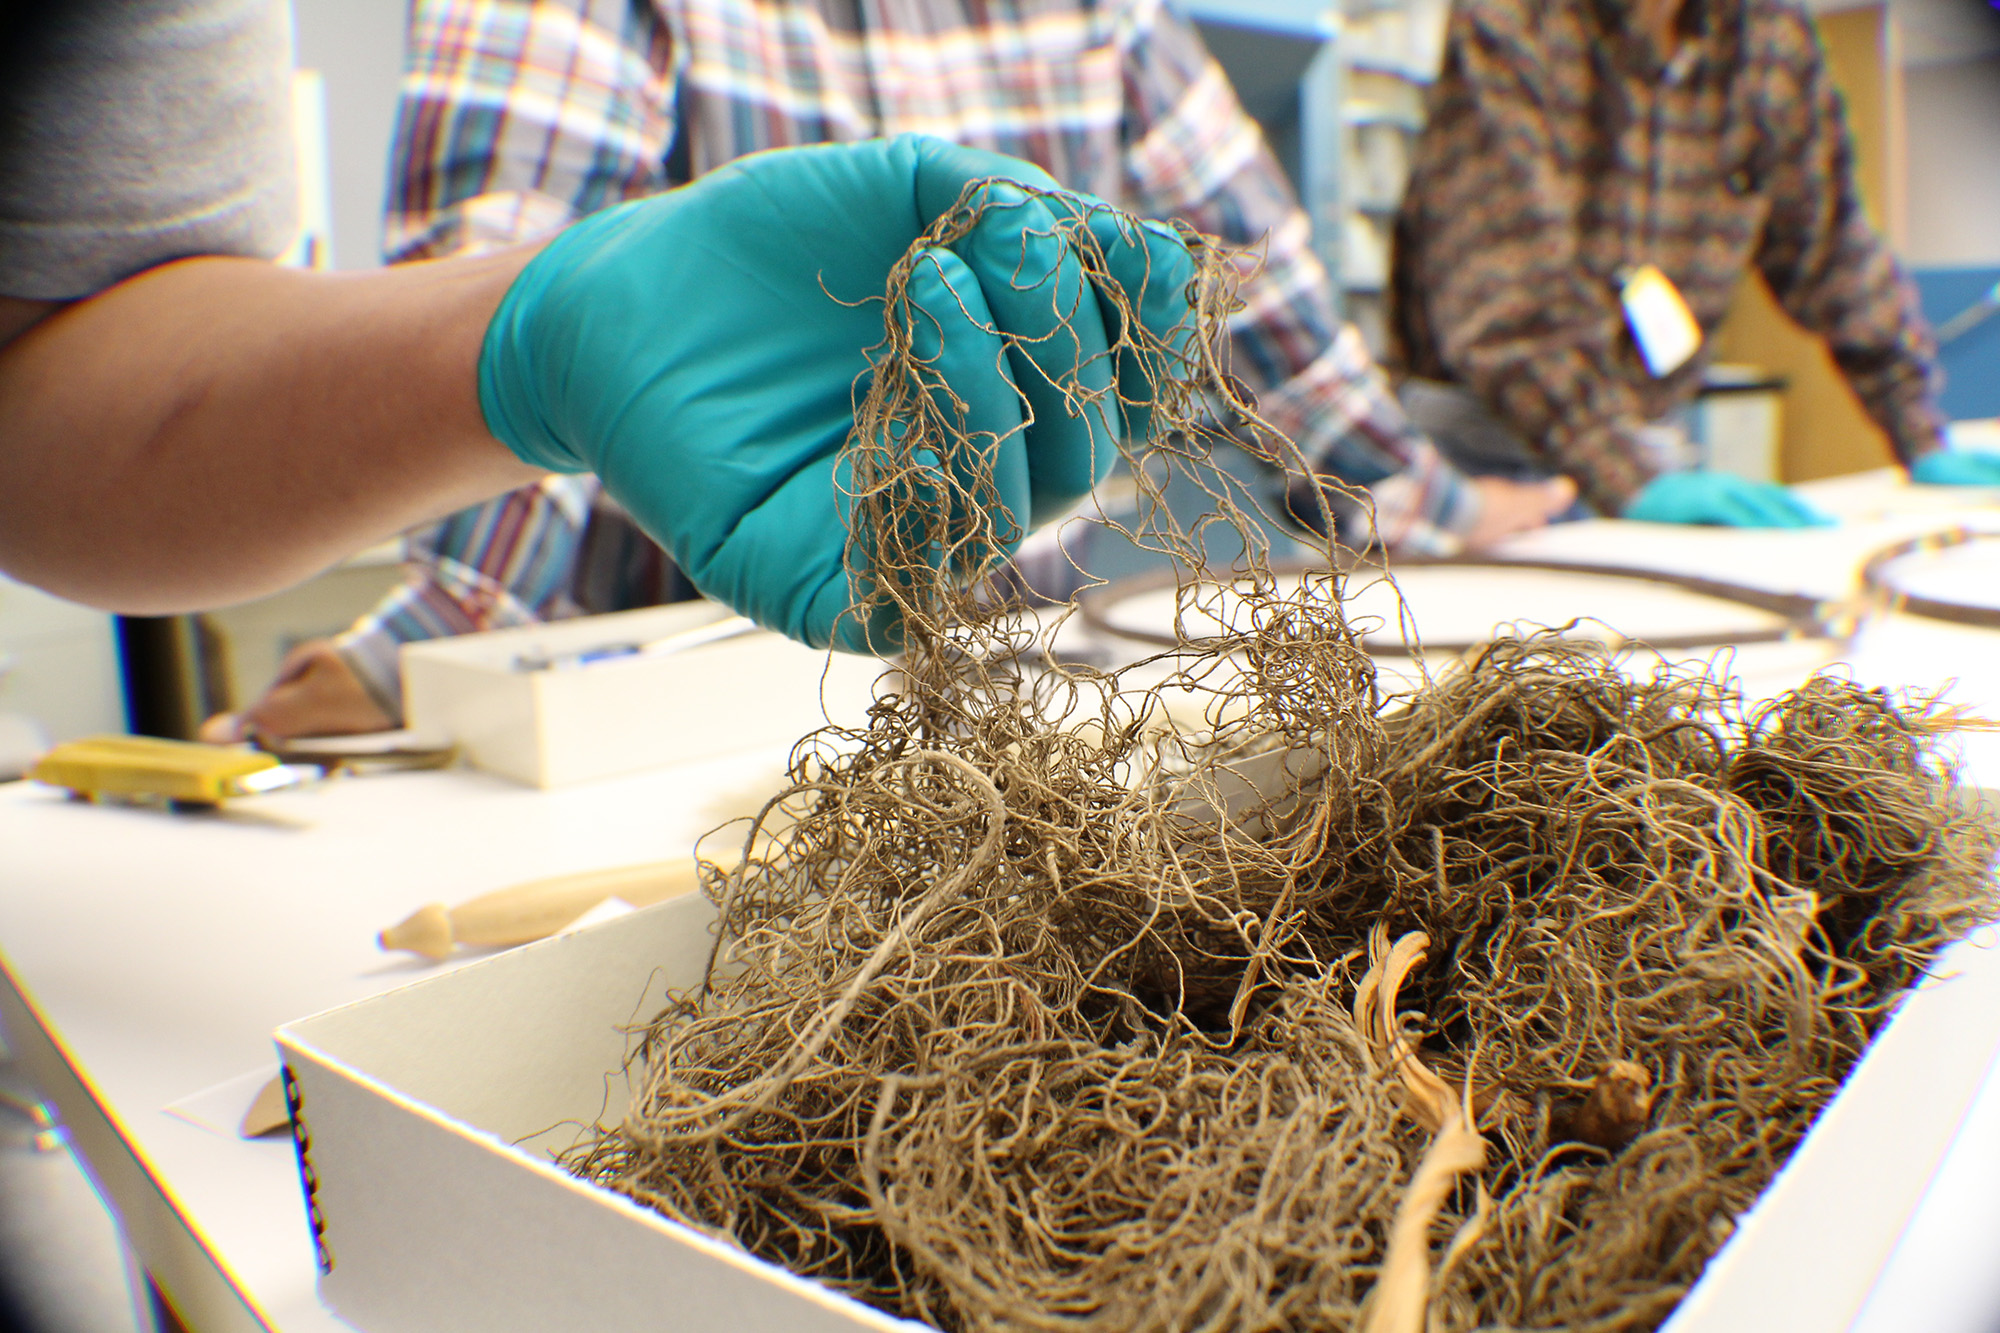 Wanapum researchers examine netting in collections